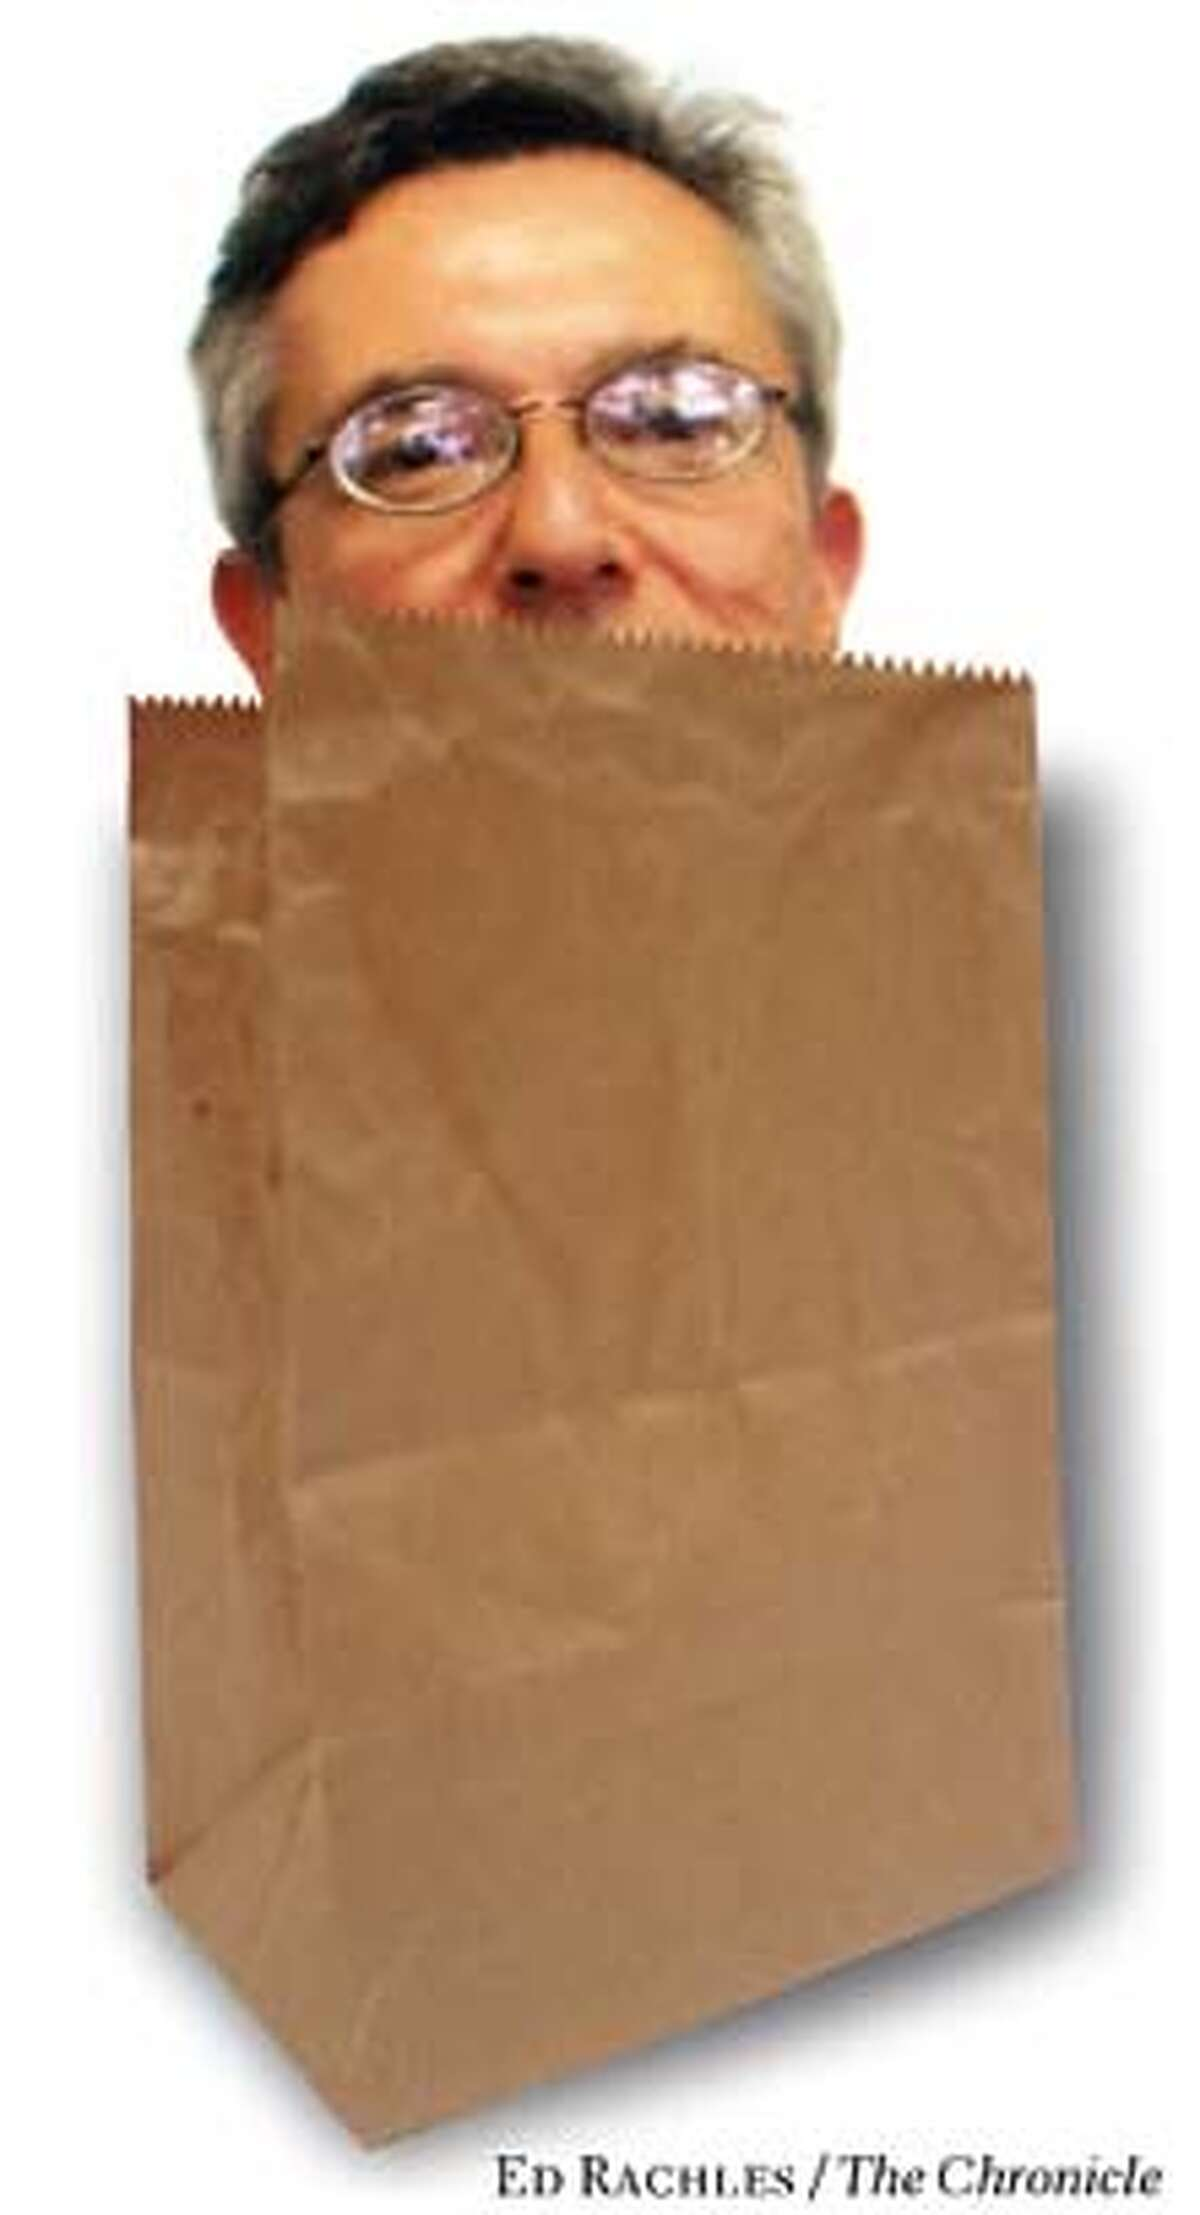 Miles Locker has been suspended from his job in the Department of Industrial Relations for attending a brown bag luncheon on lunch-break rights. Chronicle photo illustration by Ed Rachles